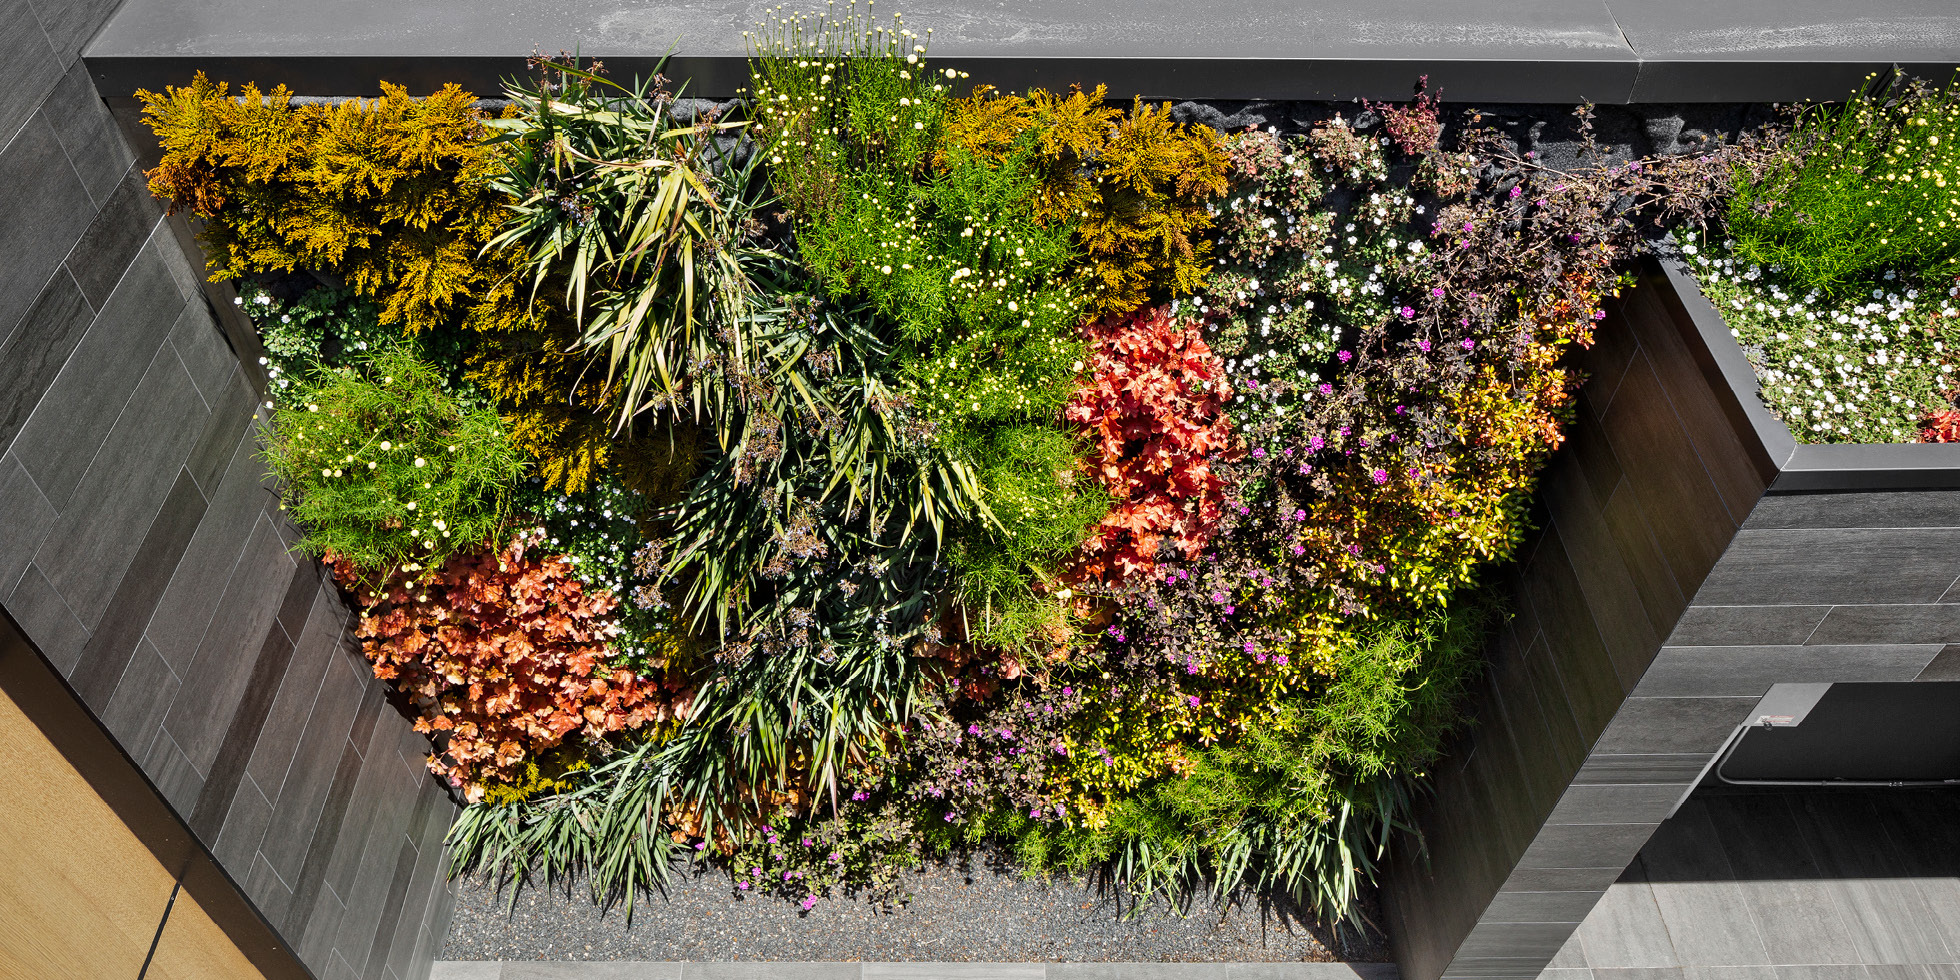 San Francisco Residence Living Wall by Habitat Horticulture - View 2